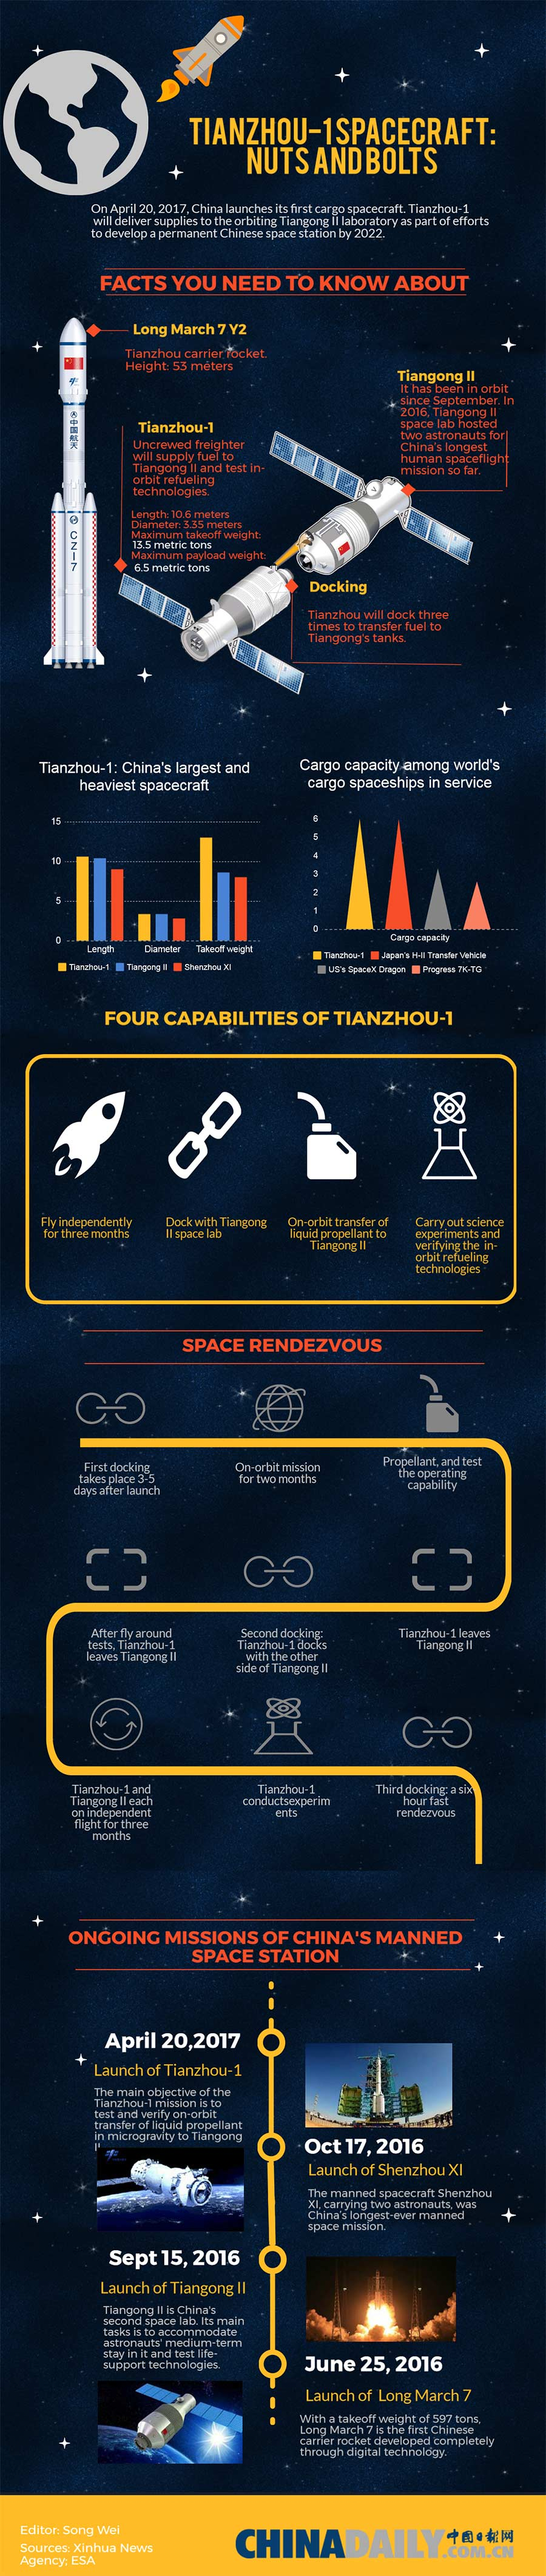 Tianzhou-1 spacecraft: Nuts and bolts(1/1)